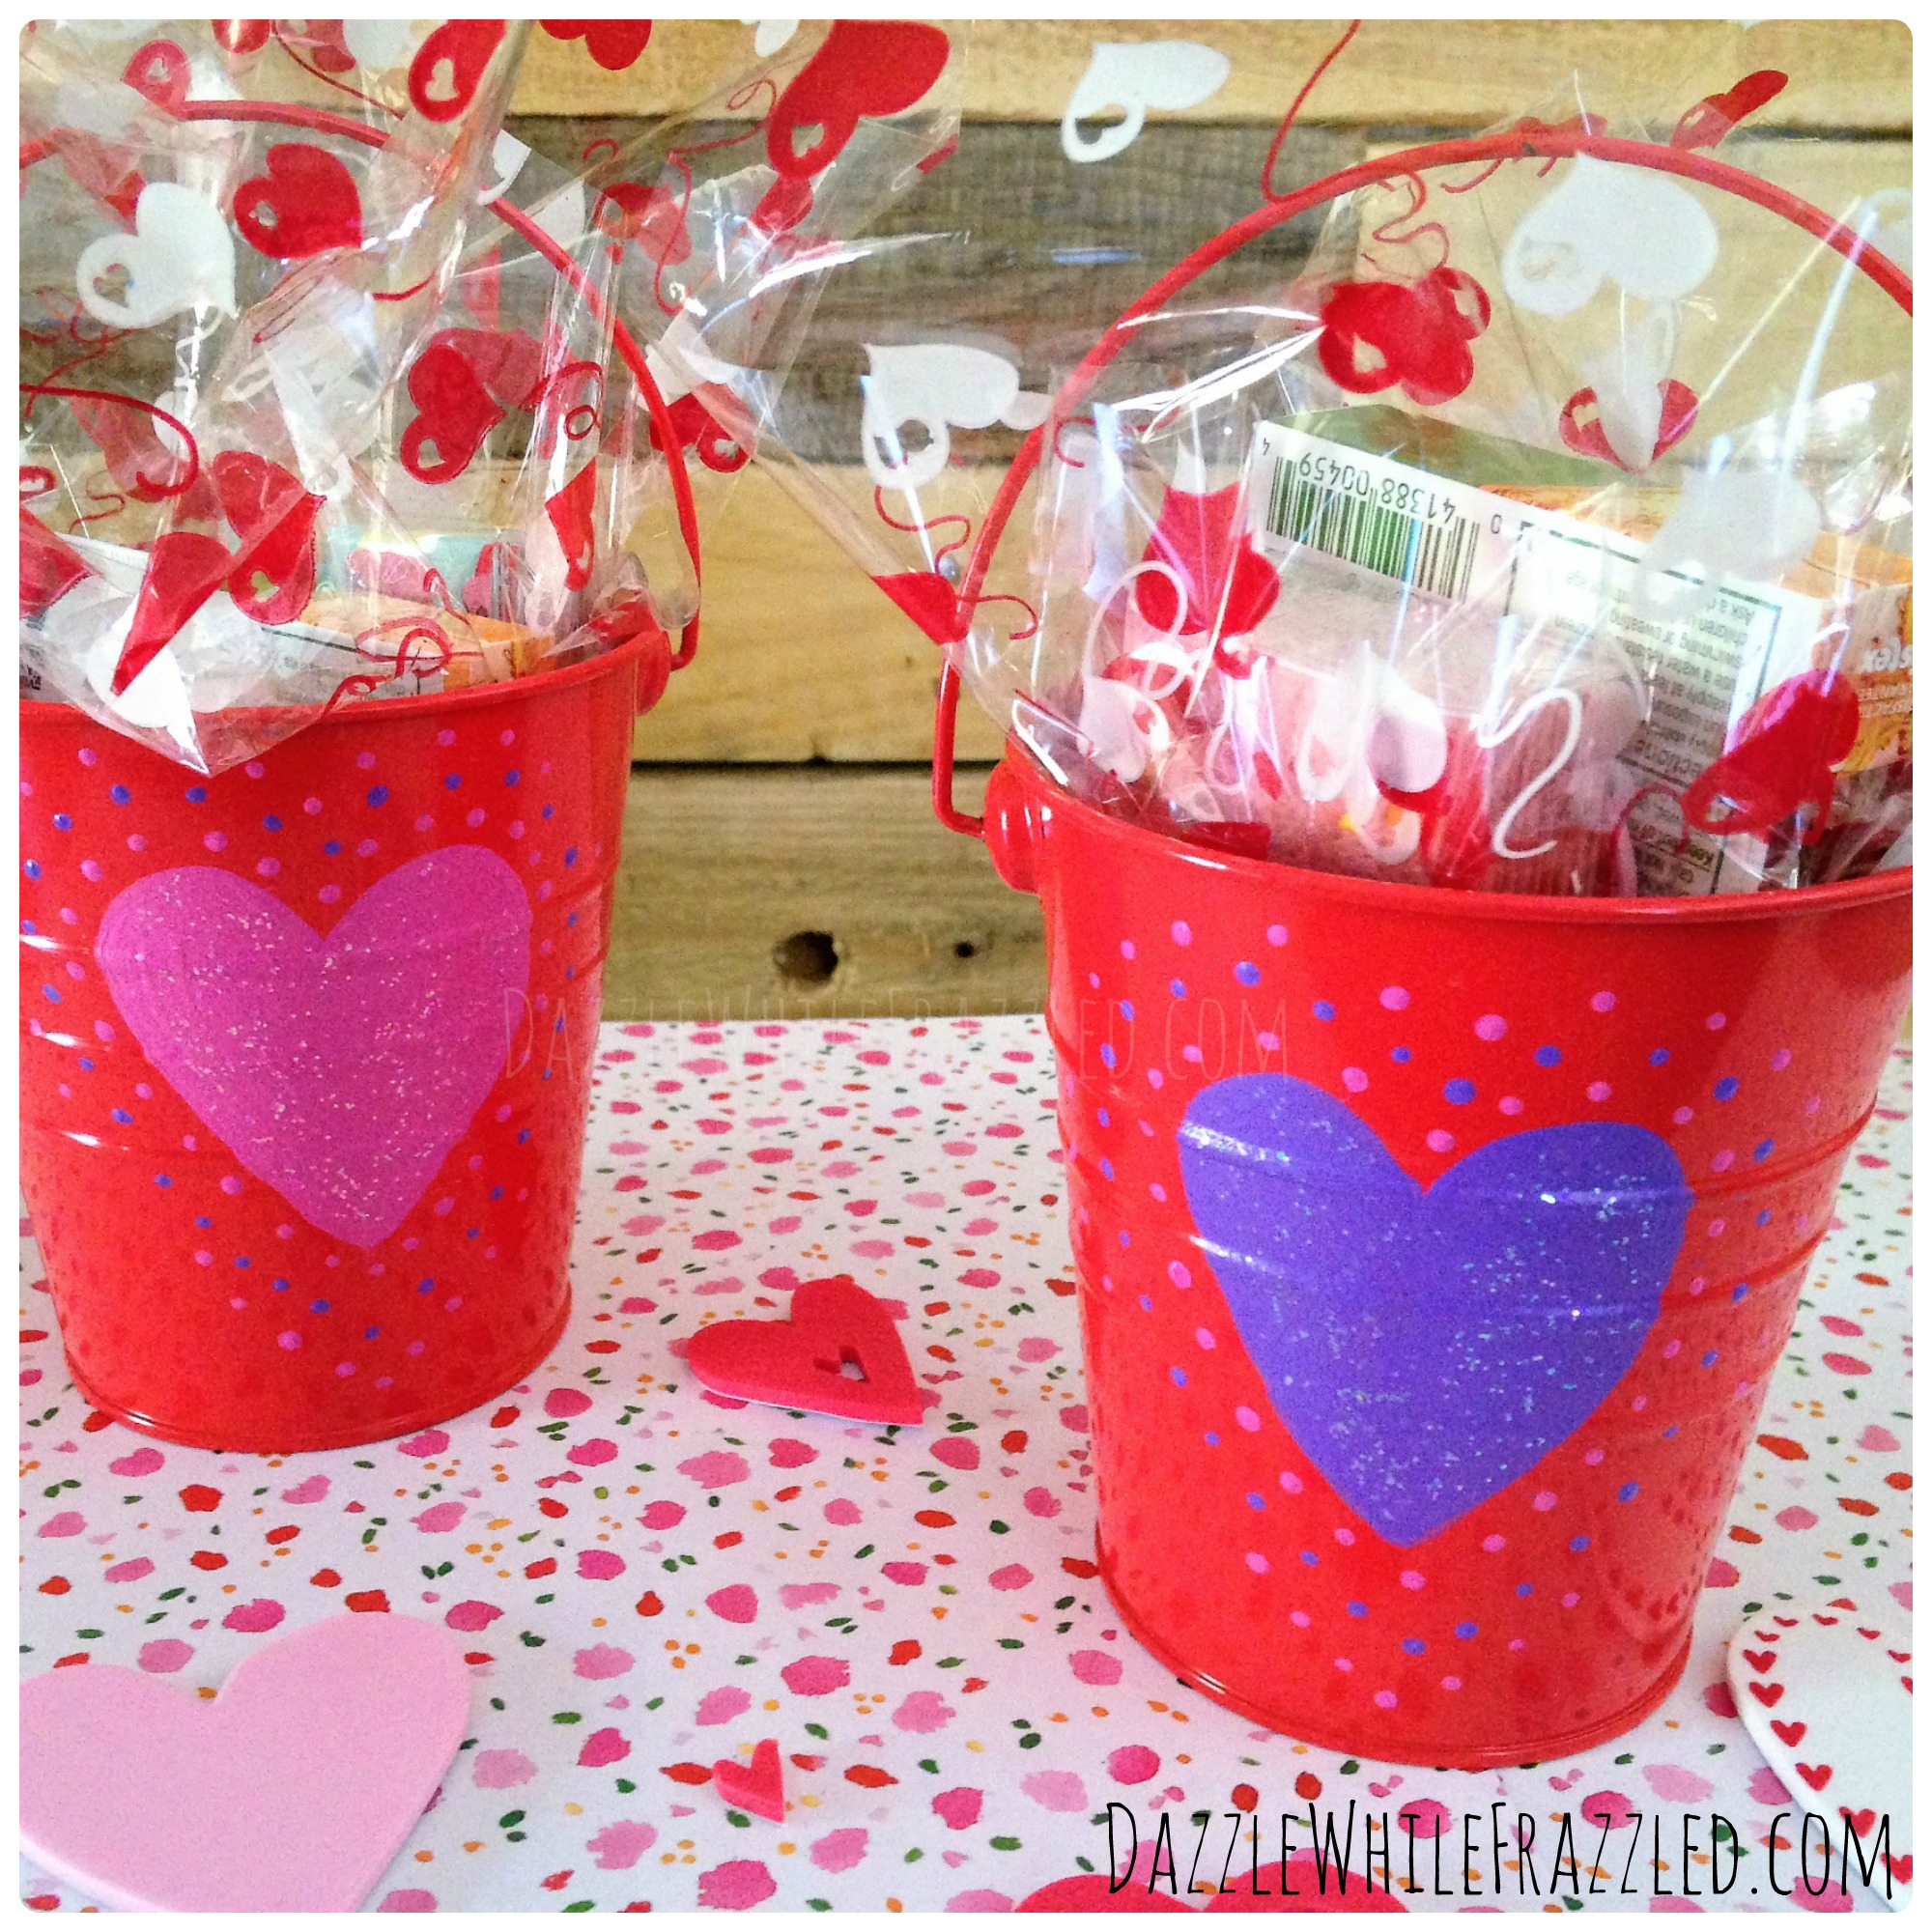 Use small metal pails and Valentine's Day cellophane paper to make DIY $5 teacher Valentine's Day gifts